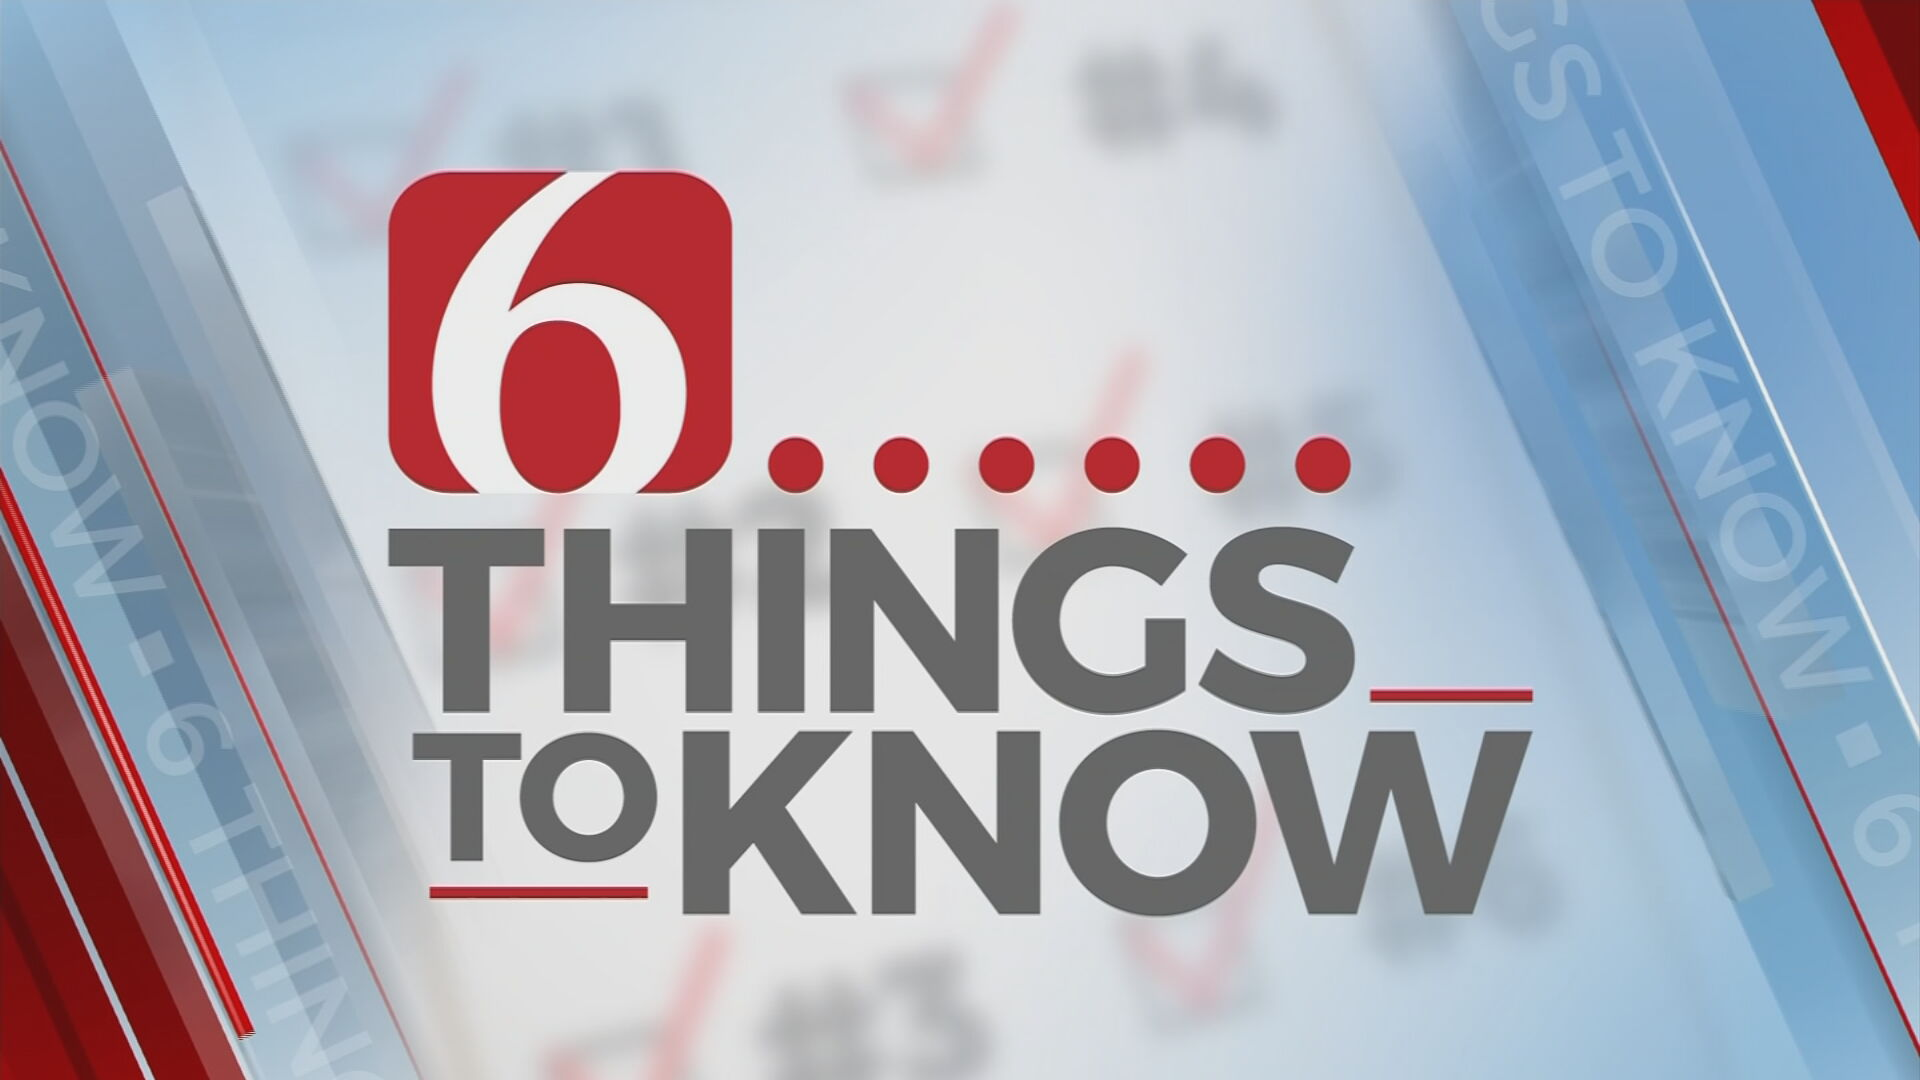 6 Things To Know (Oct 28): New Airplane Fleet & Sanitizing The Polls